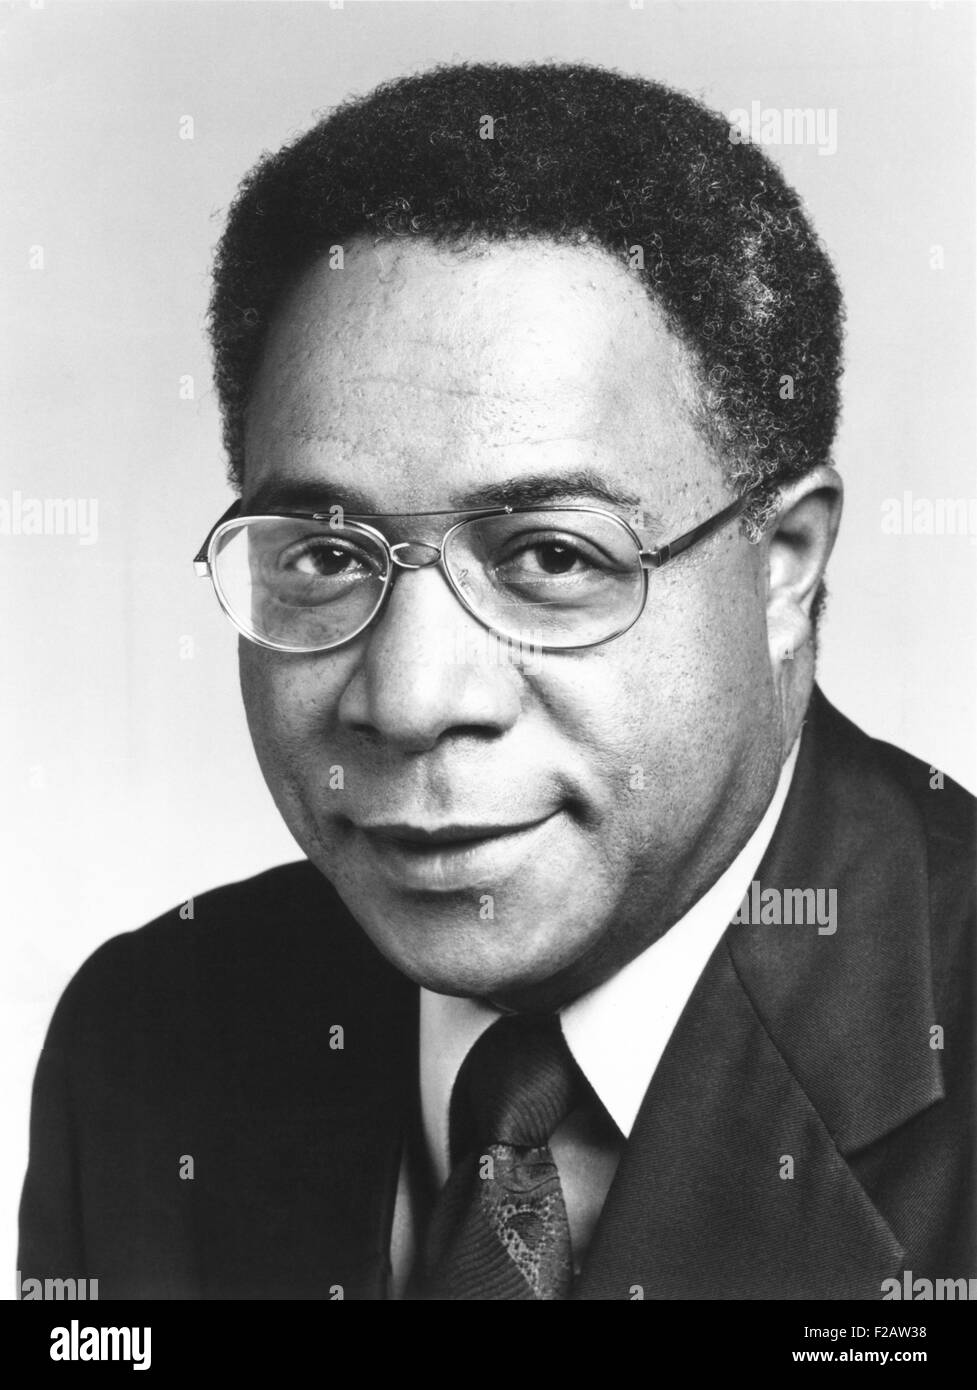 Alex Haley was the author of 'ROOTS, SAGA OF AN AMERICAN FAMILY.' In 1977 ABC adapted ROOTS into a television - Stock Image